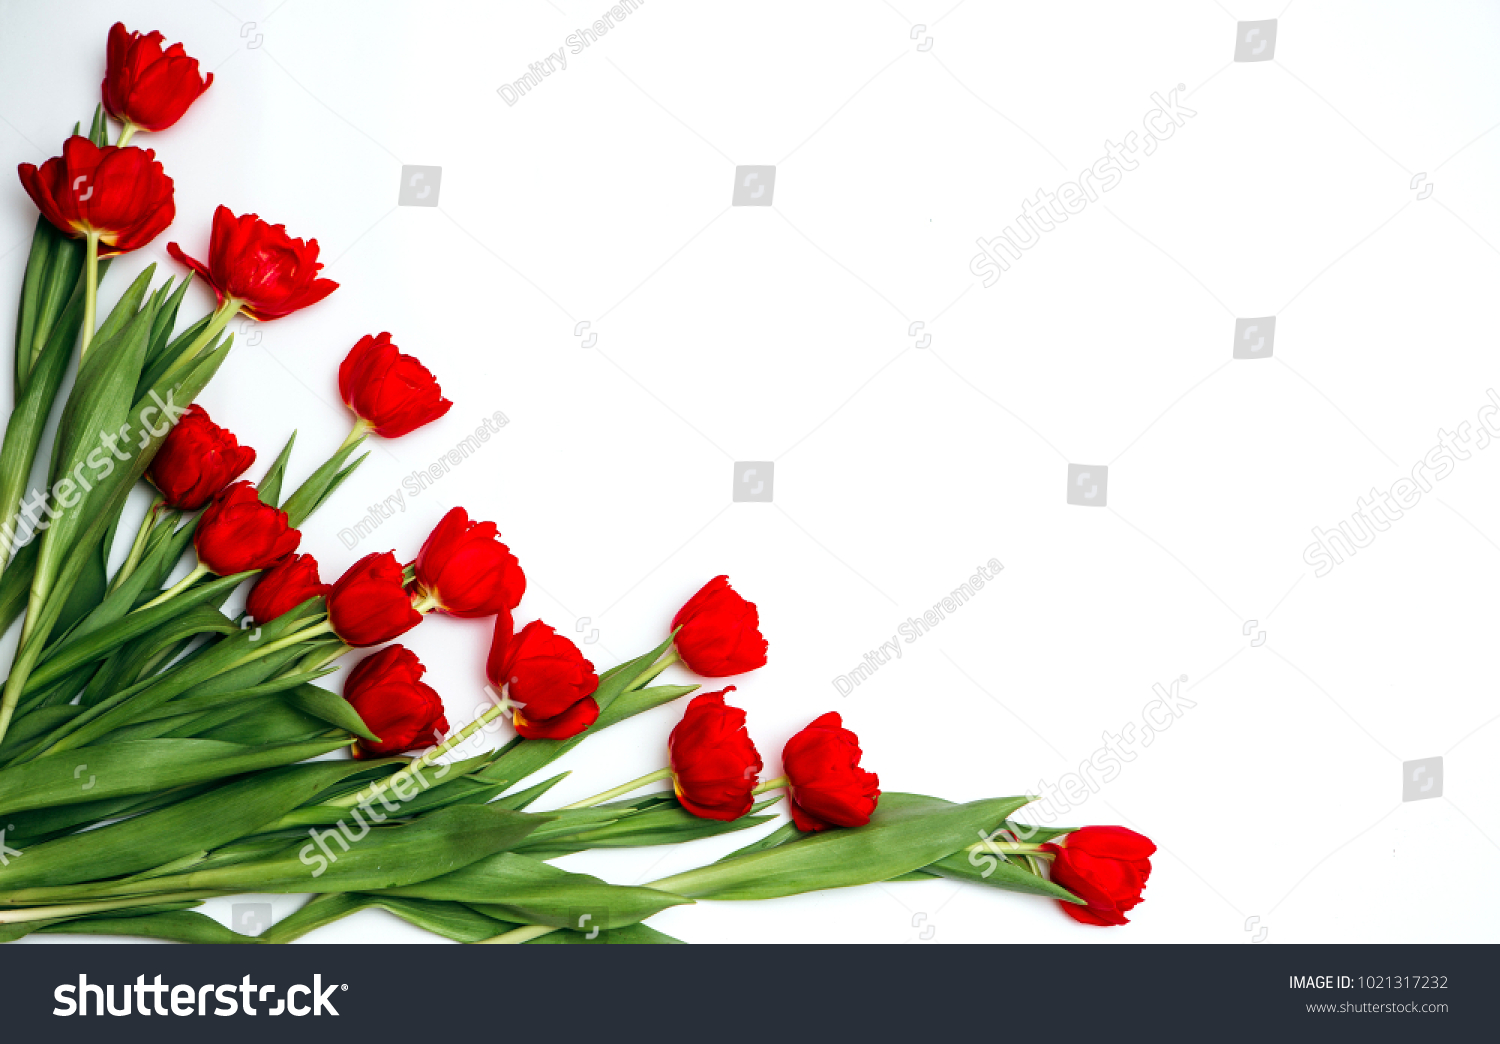 Present Card Tulip Flowers Corners Template Stock Photo (Download ...